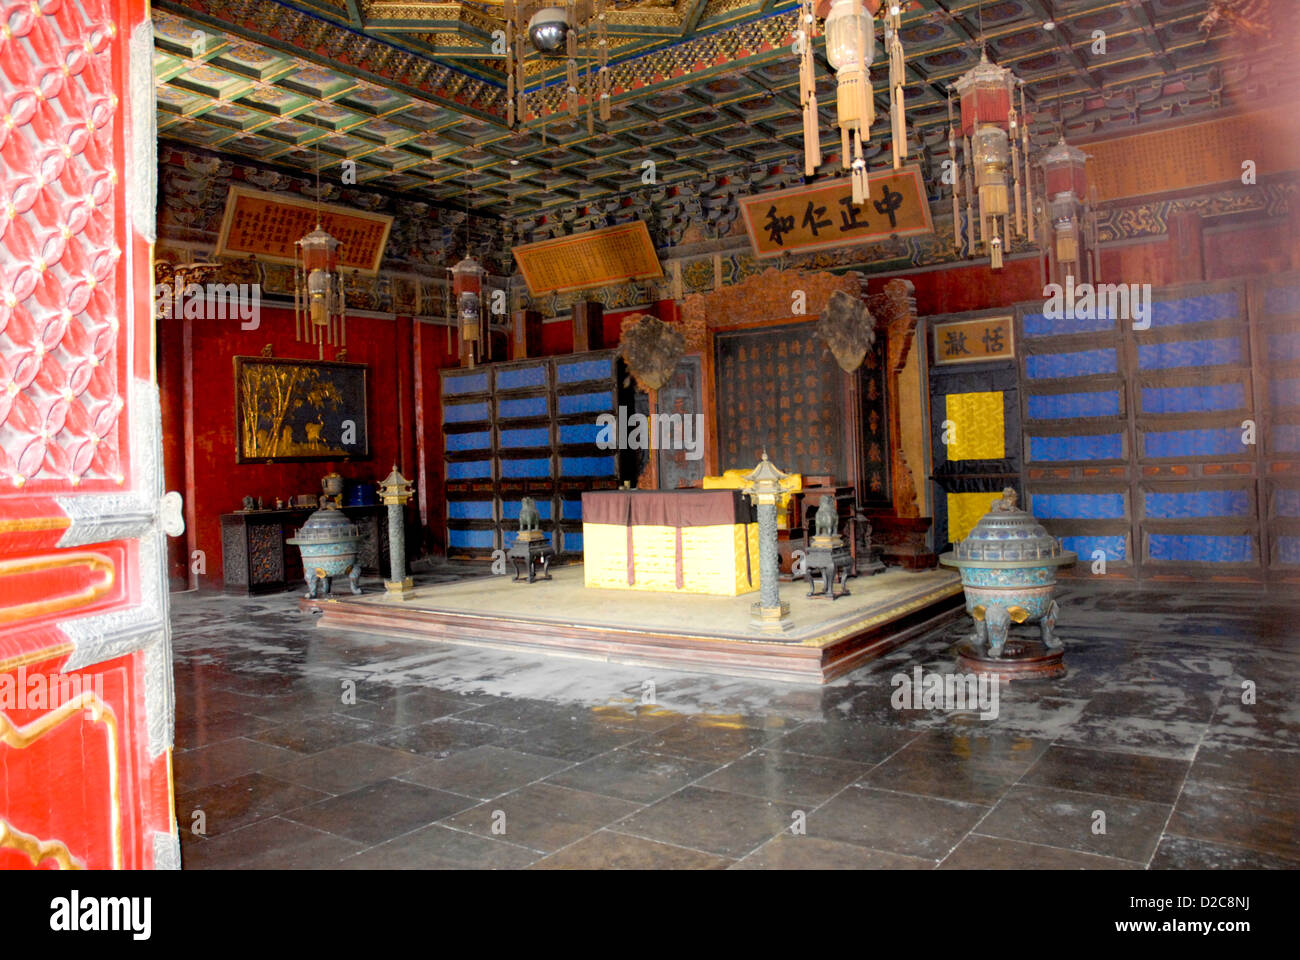 Palace Of Heavenly Purity, Forbidden City, Beijing, China - Stock Image